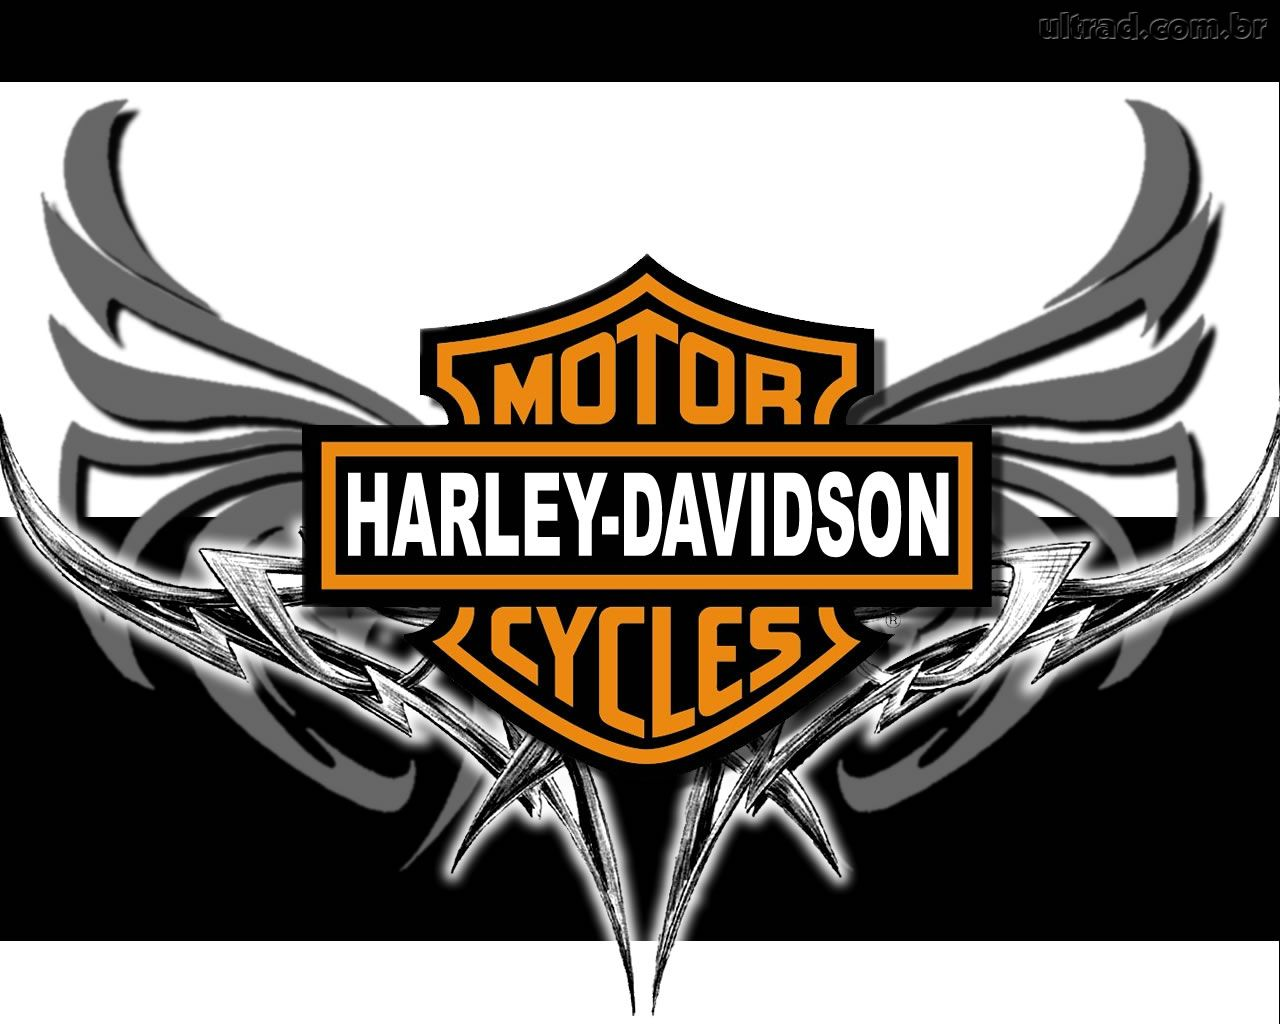 motorcycles harley davidson wallpaper collection 3. Black Bedroom Furniture Sets. Home Design Ideas